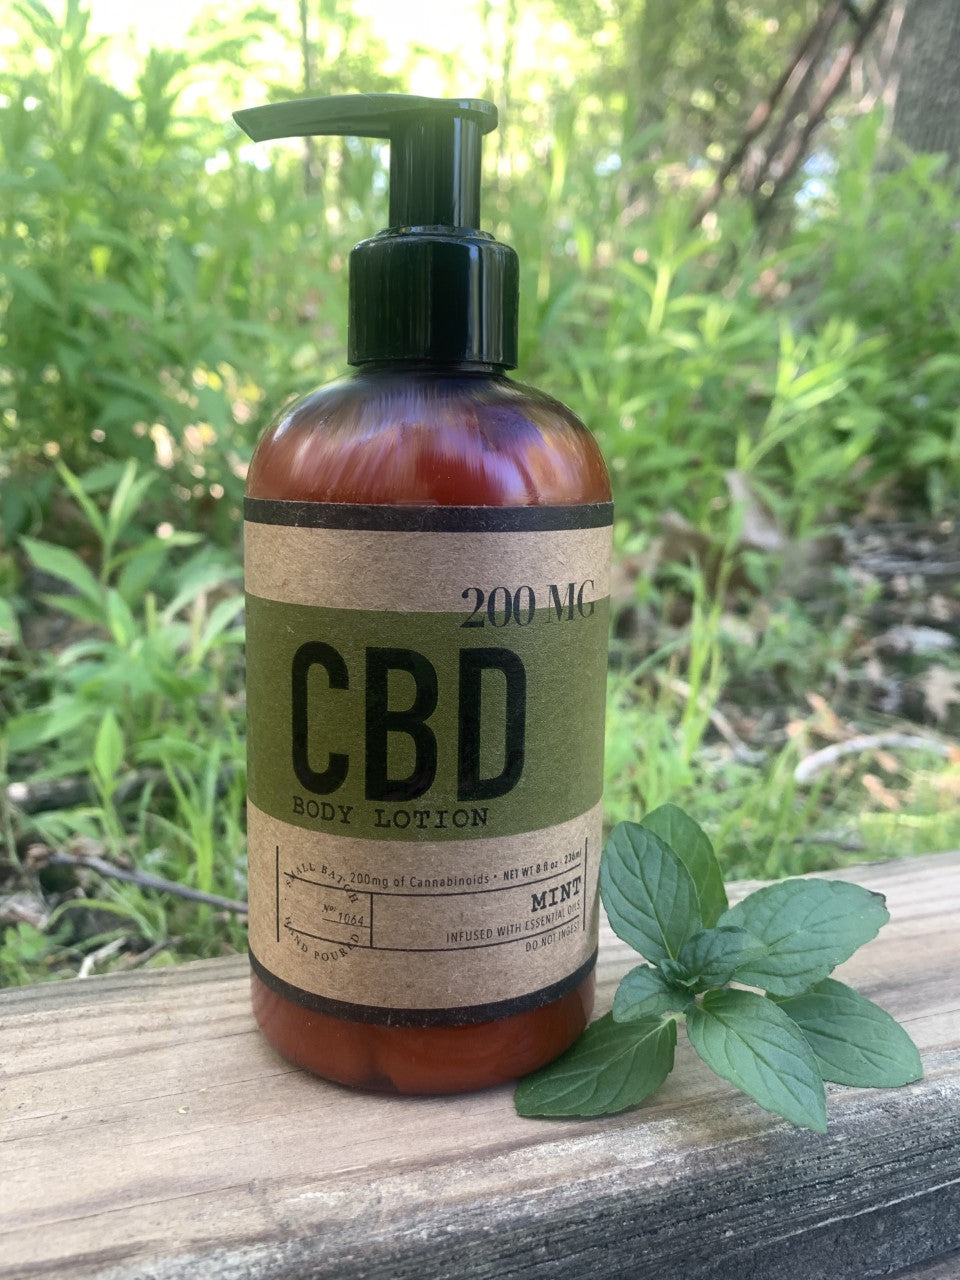 Mint 8 OZ / 200 MG CBD Lotion